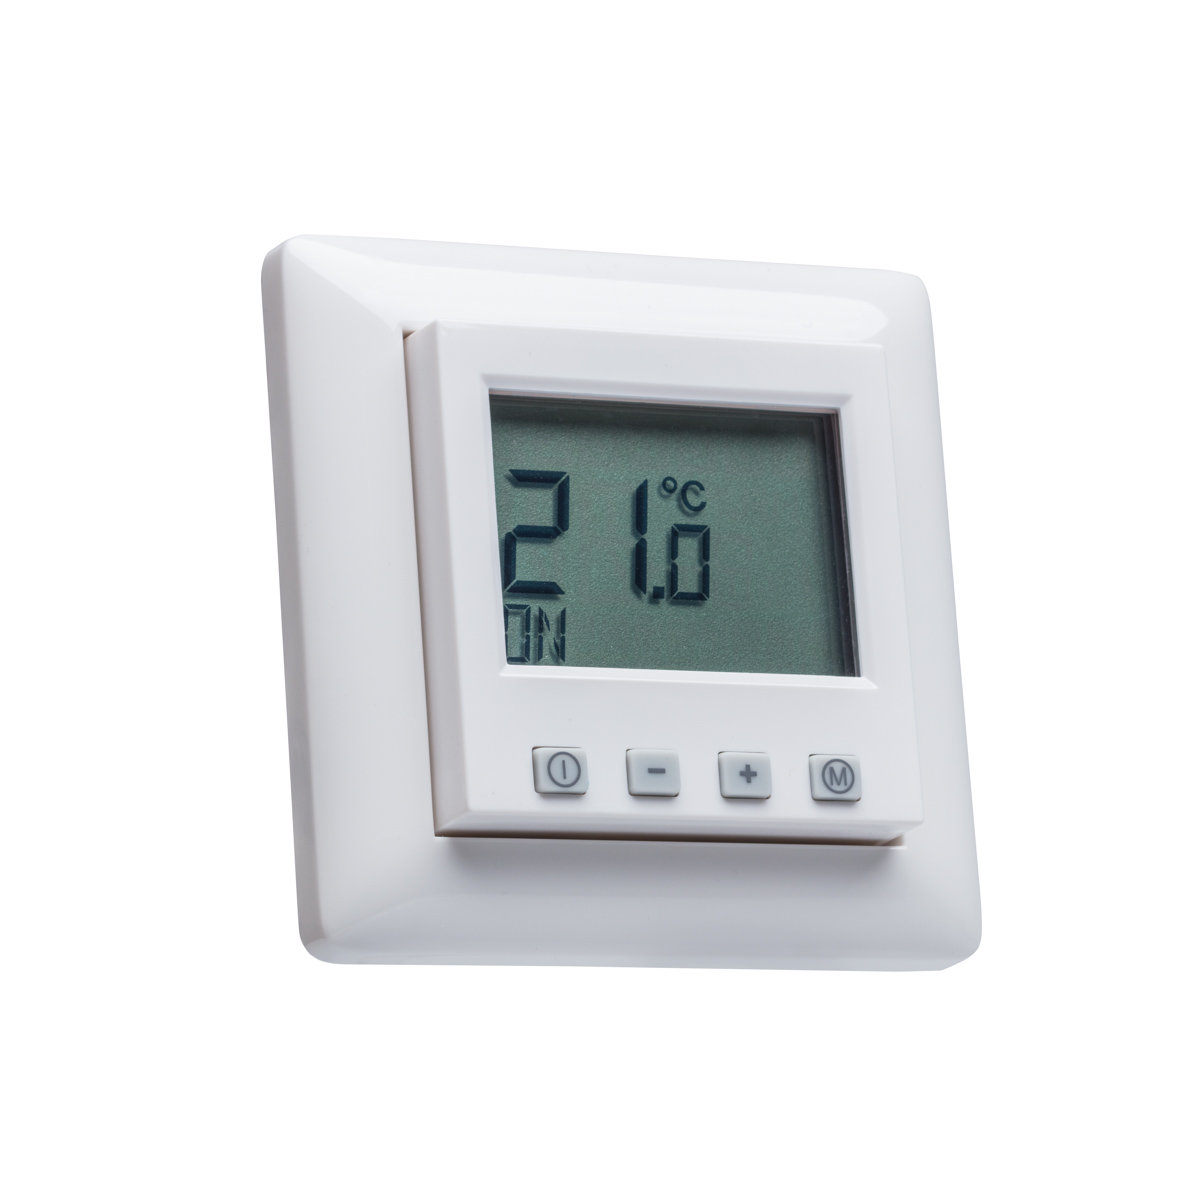 digital raumthermostat mit gira standard 55 glanz rahmen. Black Bedroom Furniture Sets. Home Design Ideas